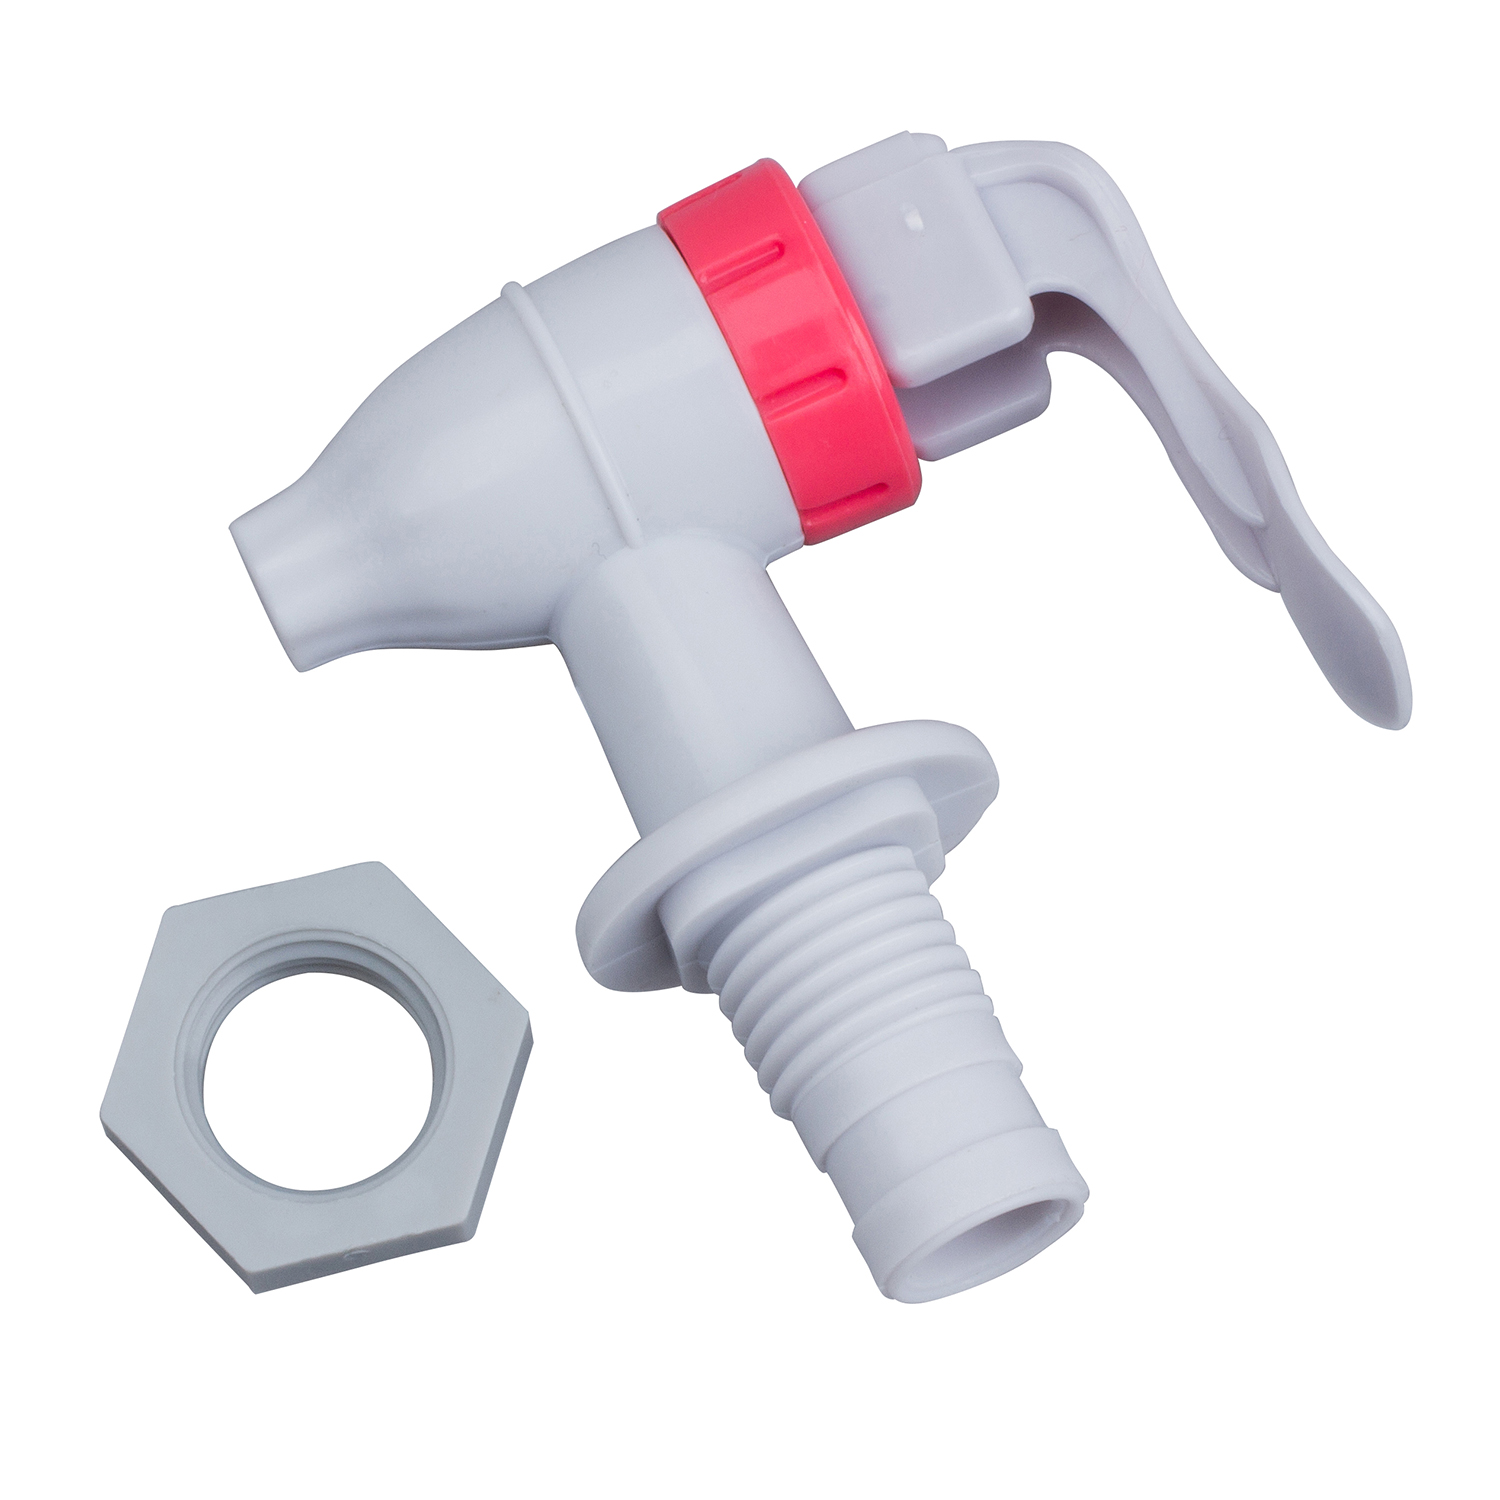 Hot Push Type Plastic Replacement Water Dispenser Tap Faucet White Red